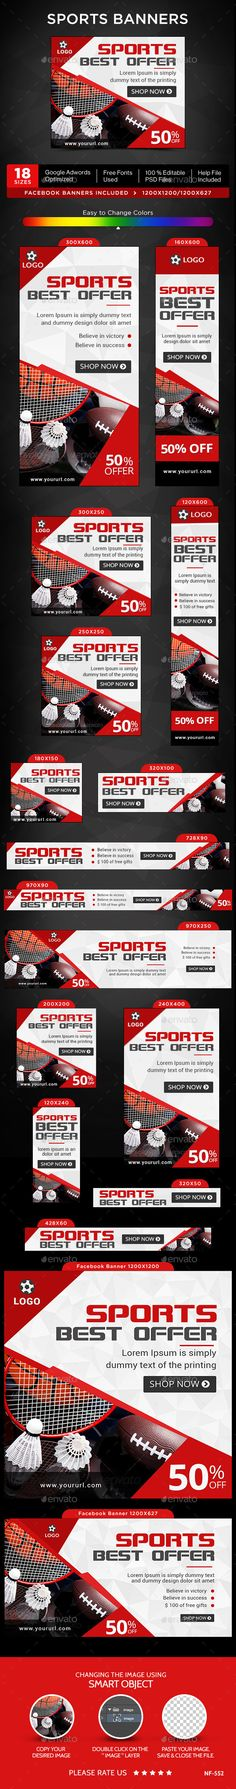 by Hyov on GraphicRiver. Promote your Products and services related to Sports niche with this great looking Banner Set. Banner Template, Web Banner, Sports Banners, Psd Templates, Banner Design, Fonts, Ads, Designer Fonts, Types Of Font Styles